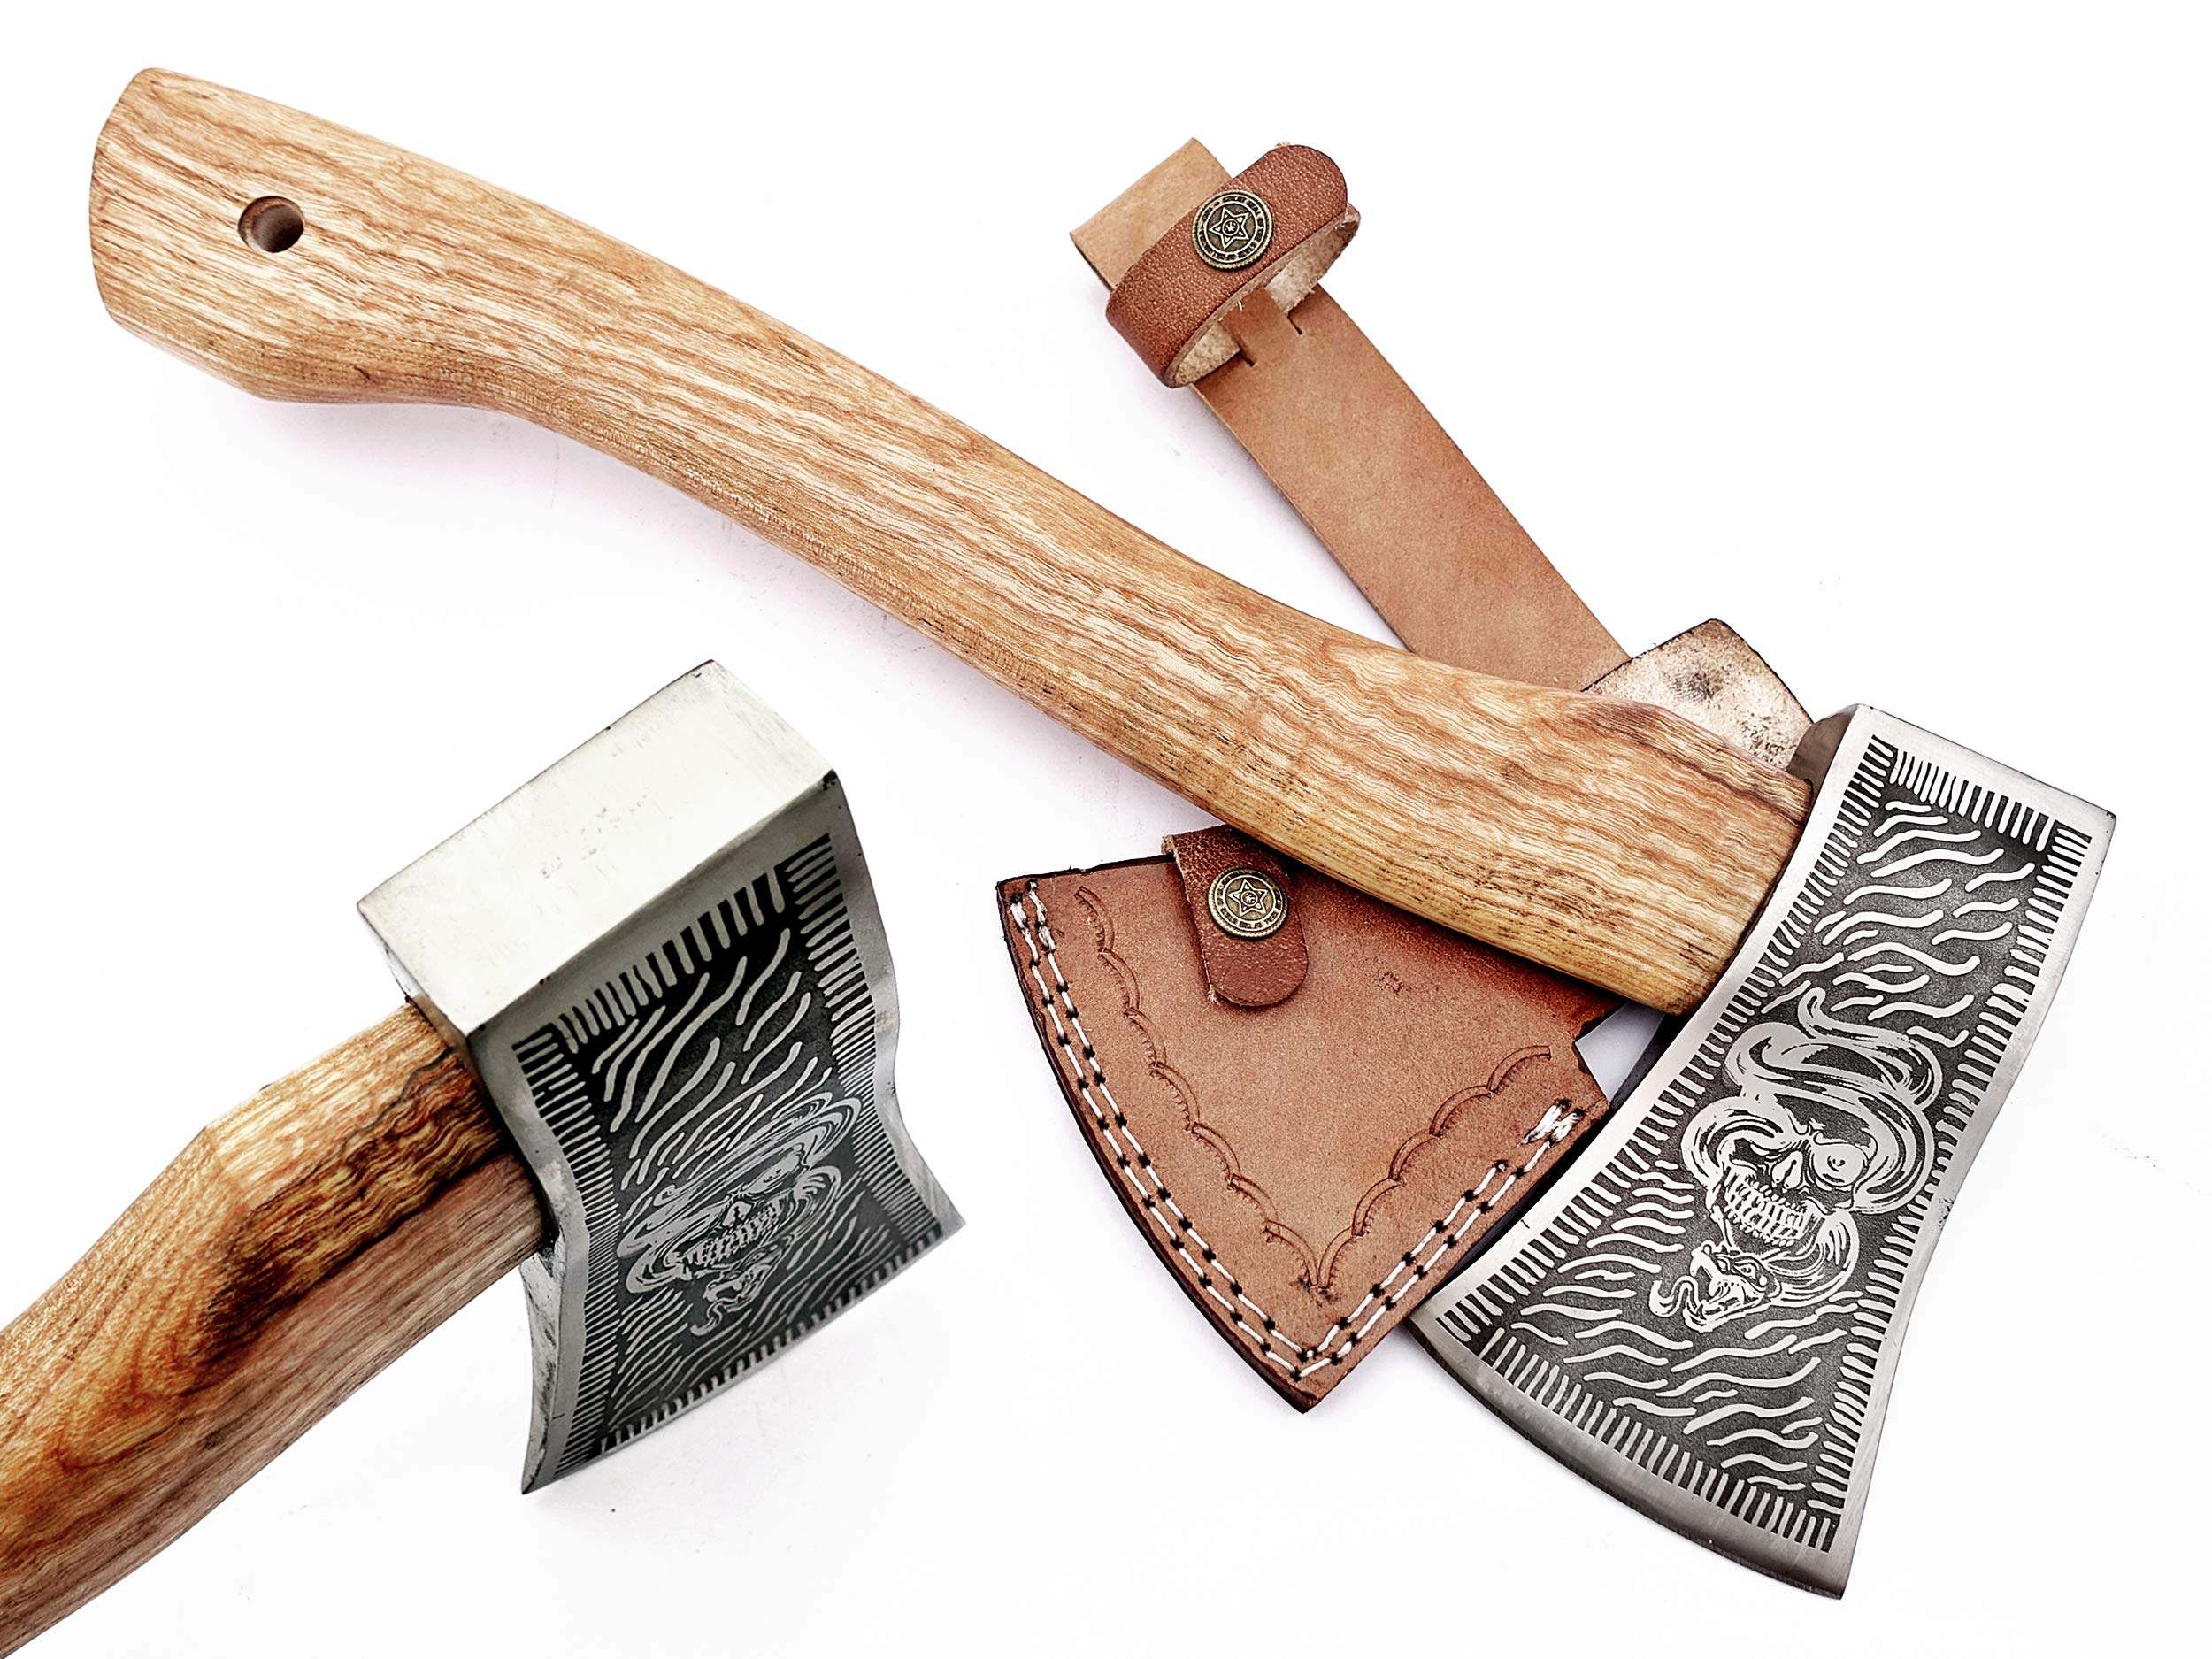 DIST-AX-263, Custom Handmade Stainless Steel Axe-Gorgeous and Solid Wood Handle by Poshland